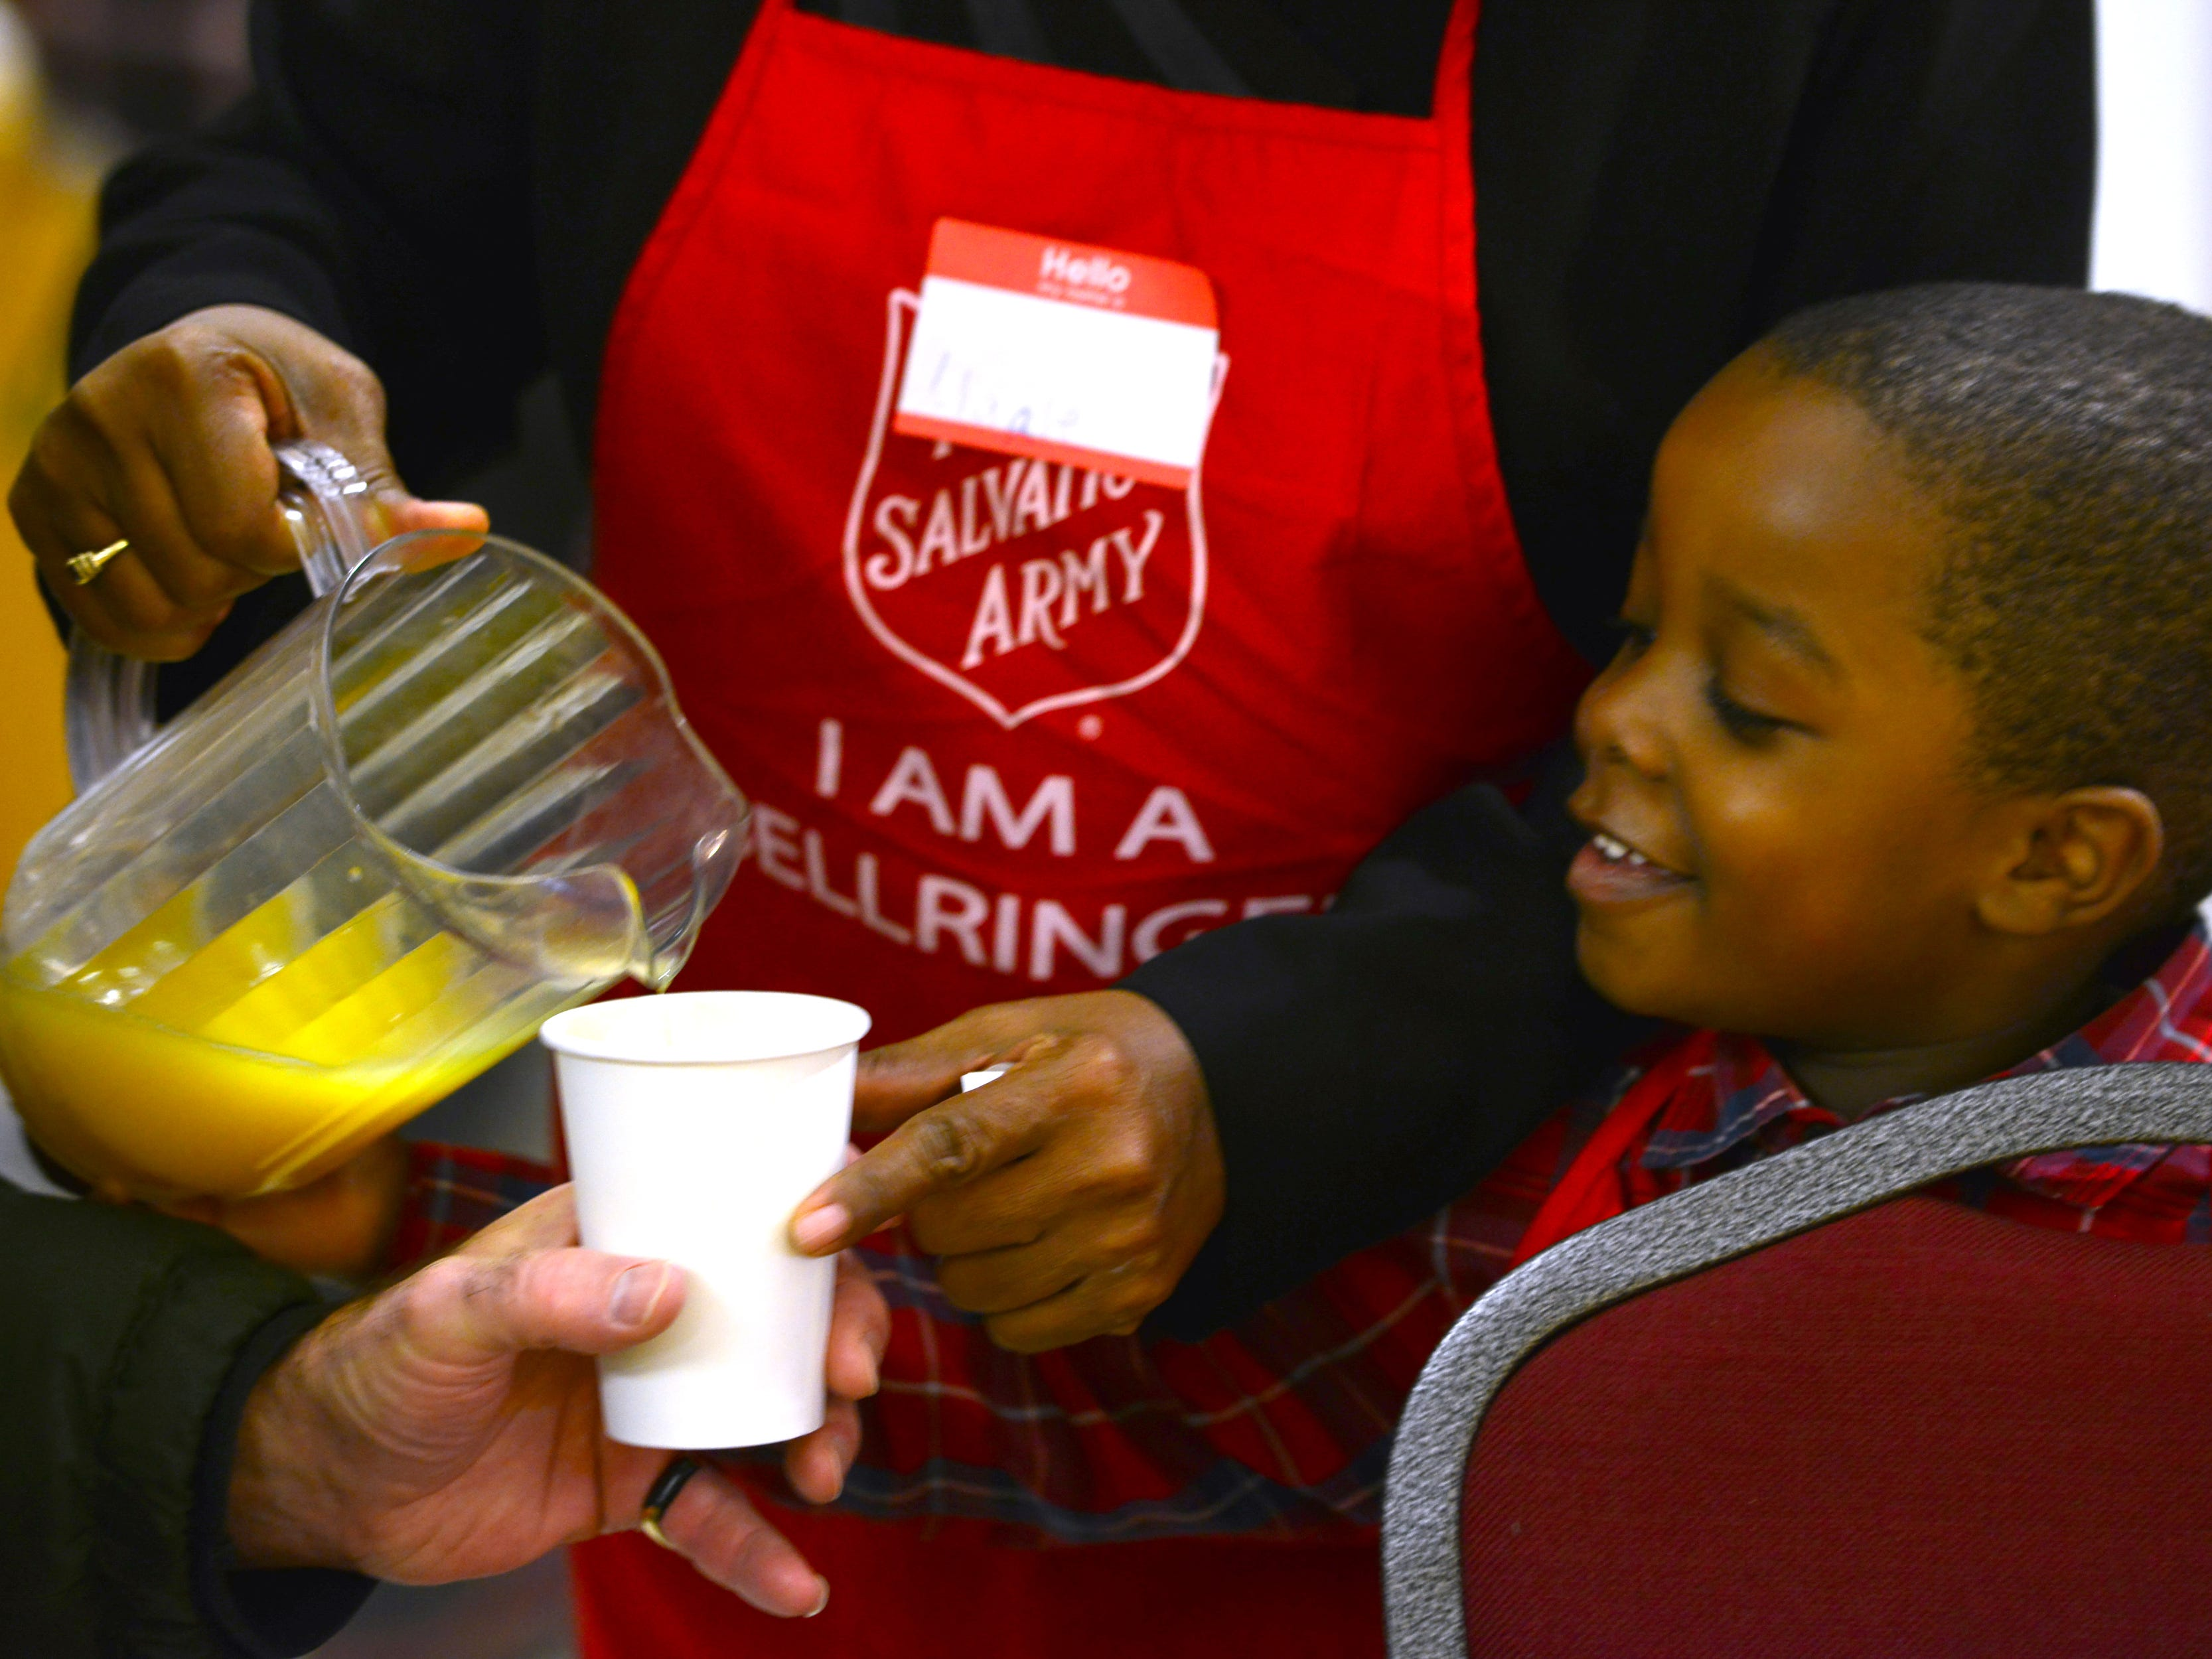 Noah Neal, 5, helps his grandmother, serve orange juice at the Thanksgiving breakfast at Eastwick College in Hackensack on Thursday morning November 22, 2018.